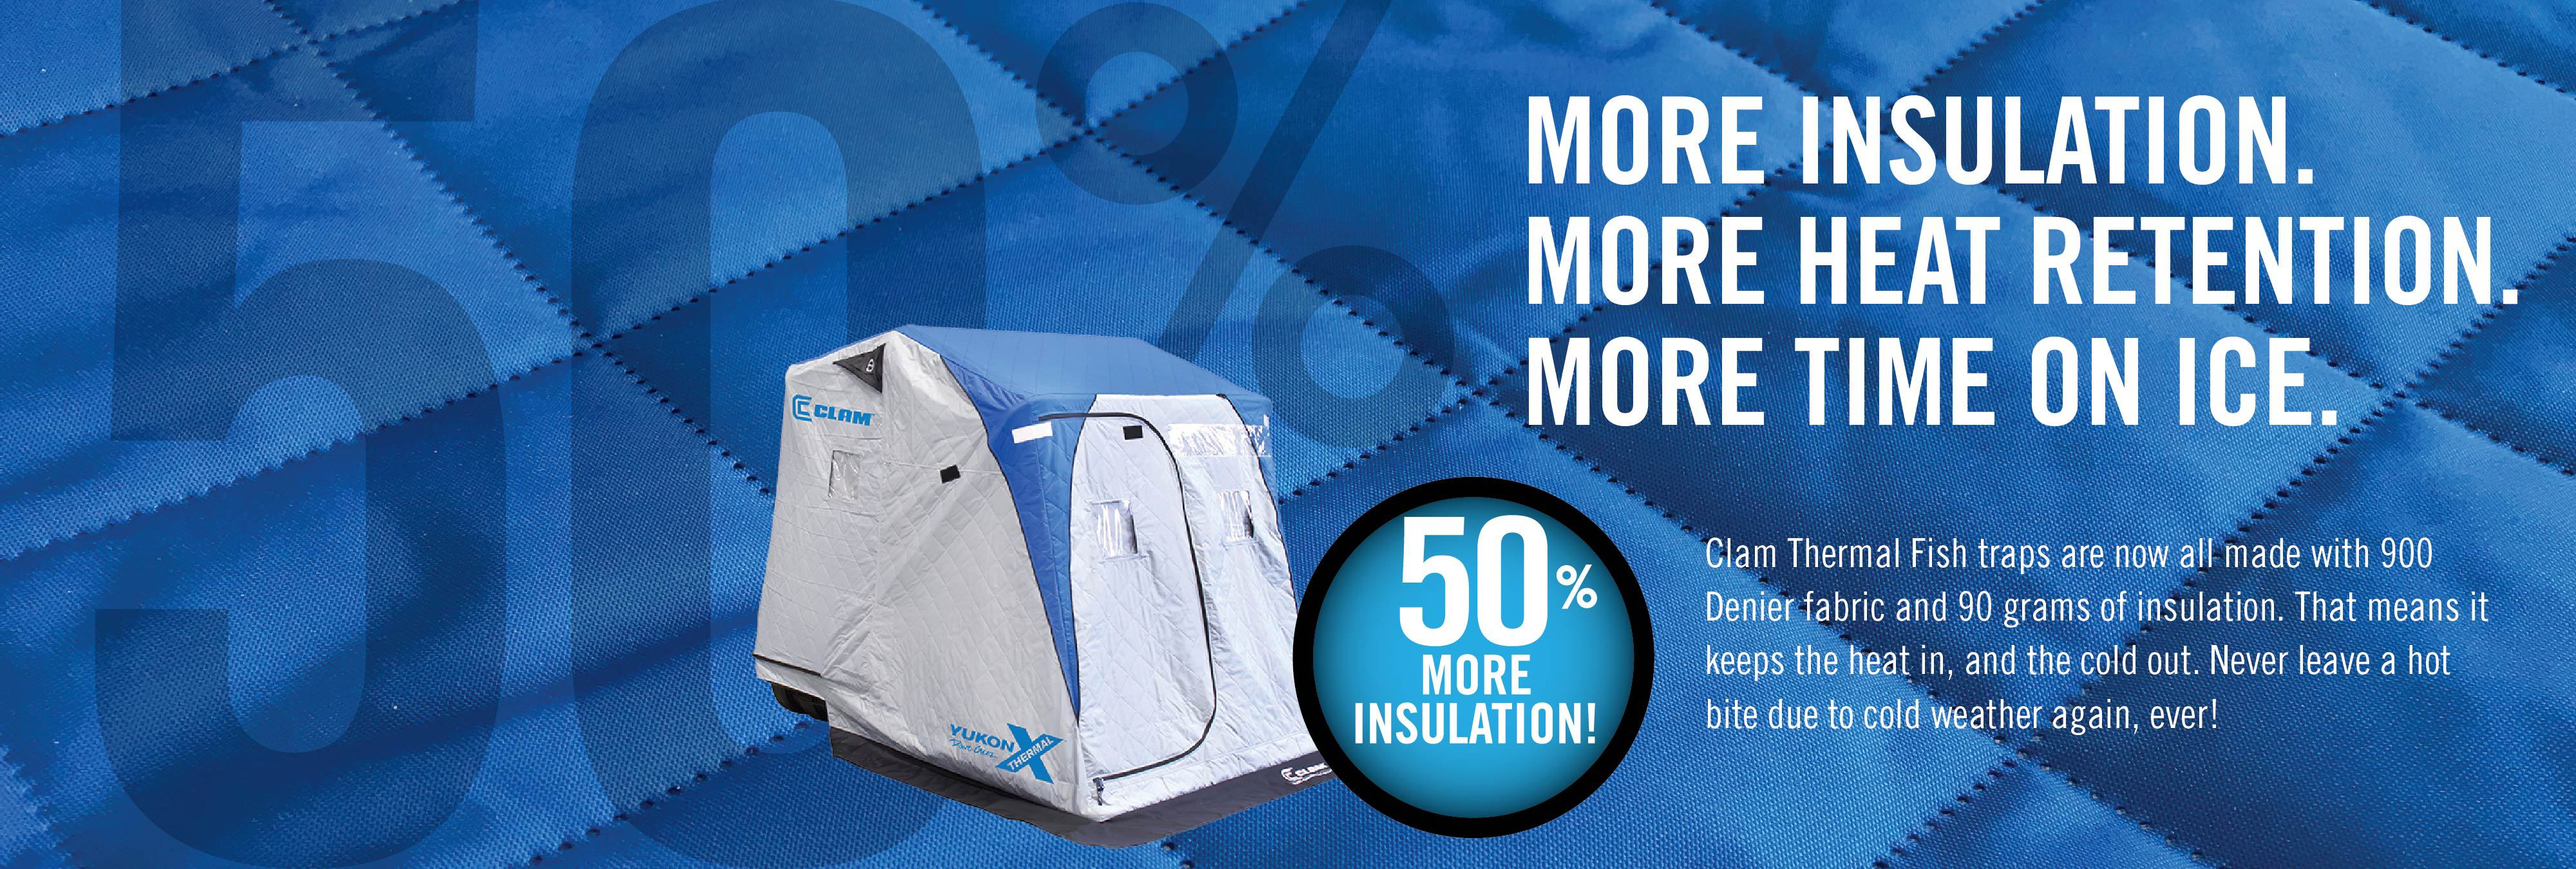 50% More Insulation Shelter Web Slide 1920 x 648-01